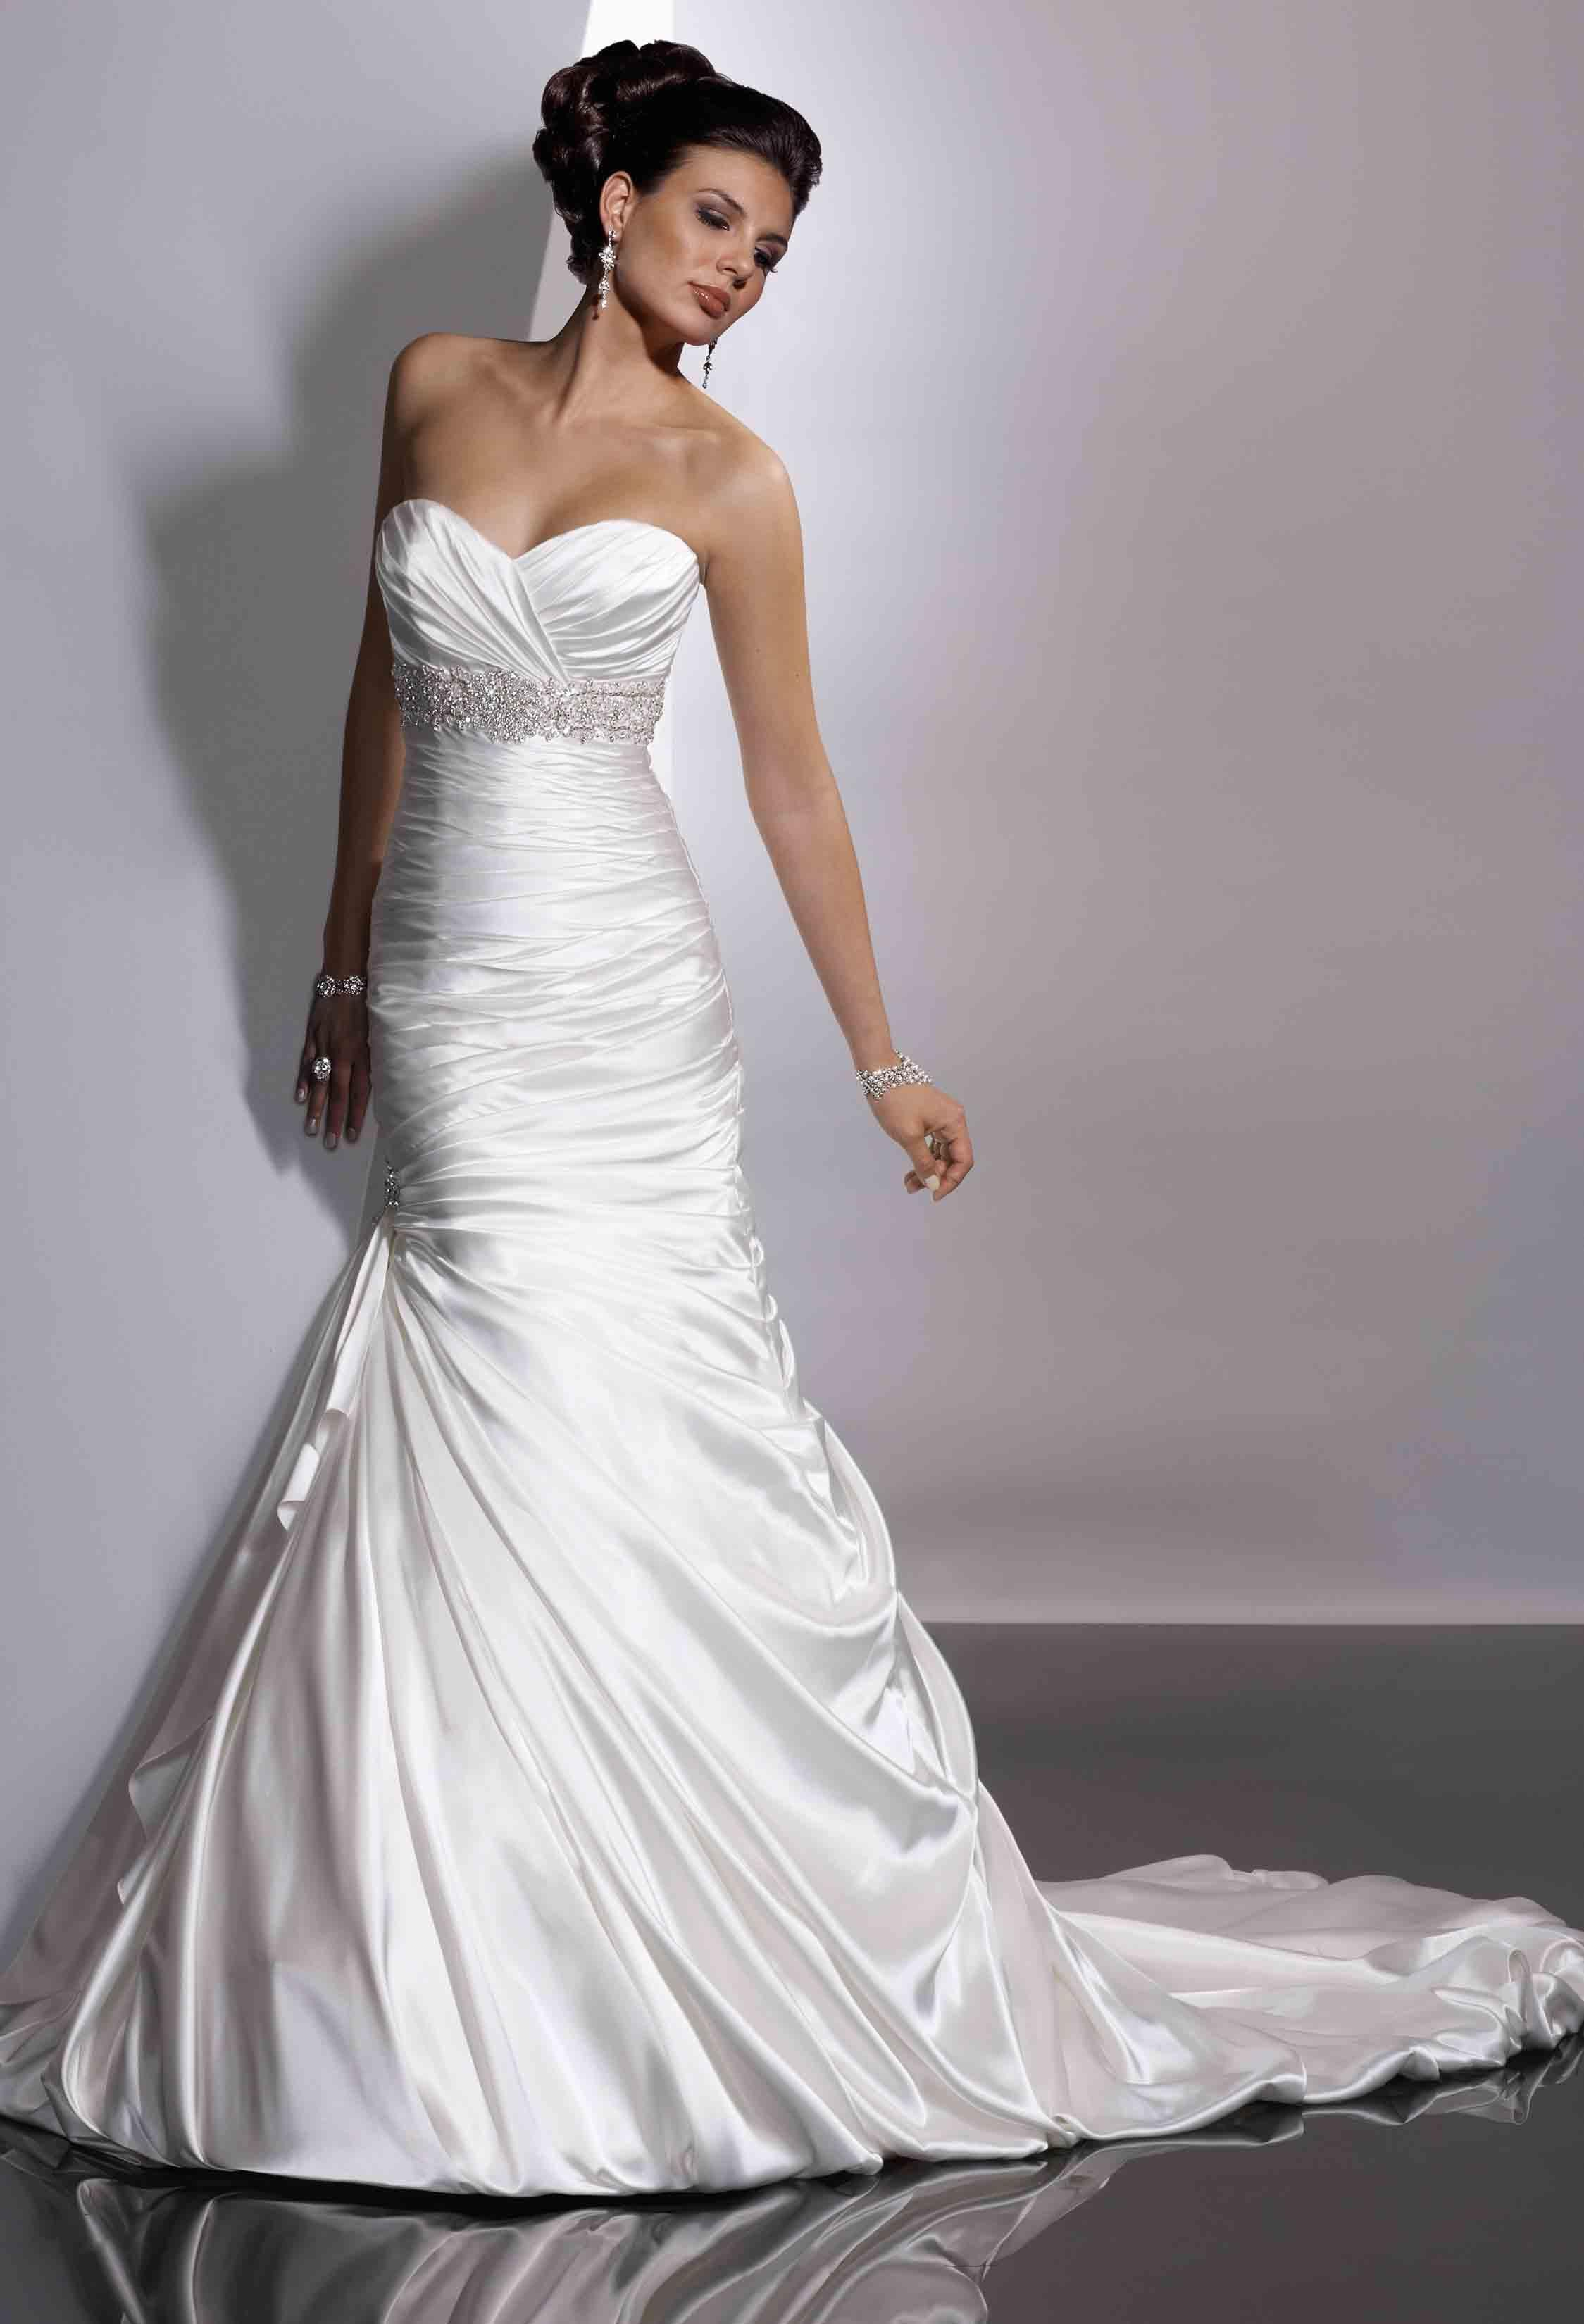 Wedding dresses springfield mo  I donut know what Iull want when the time actually comes but I